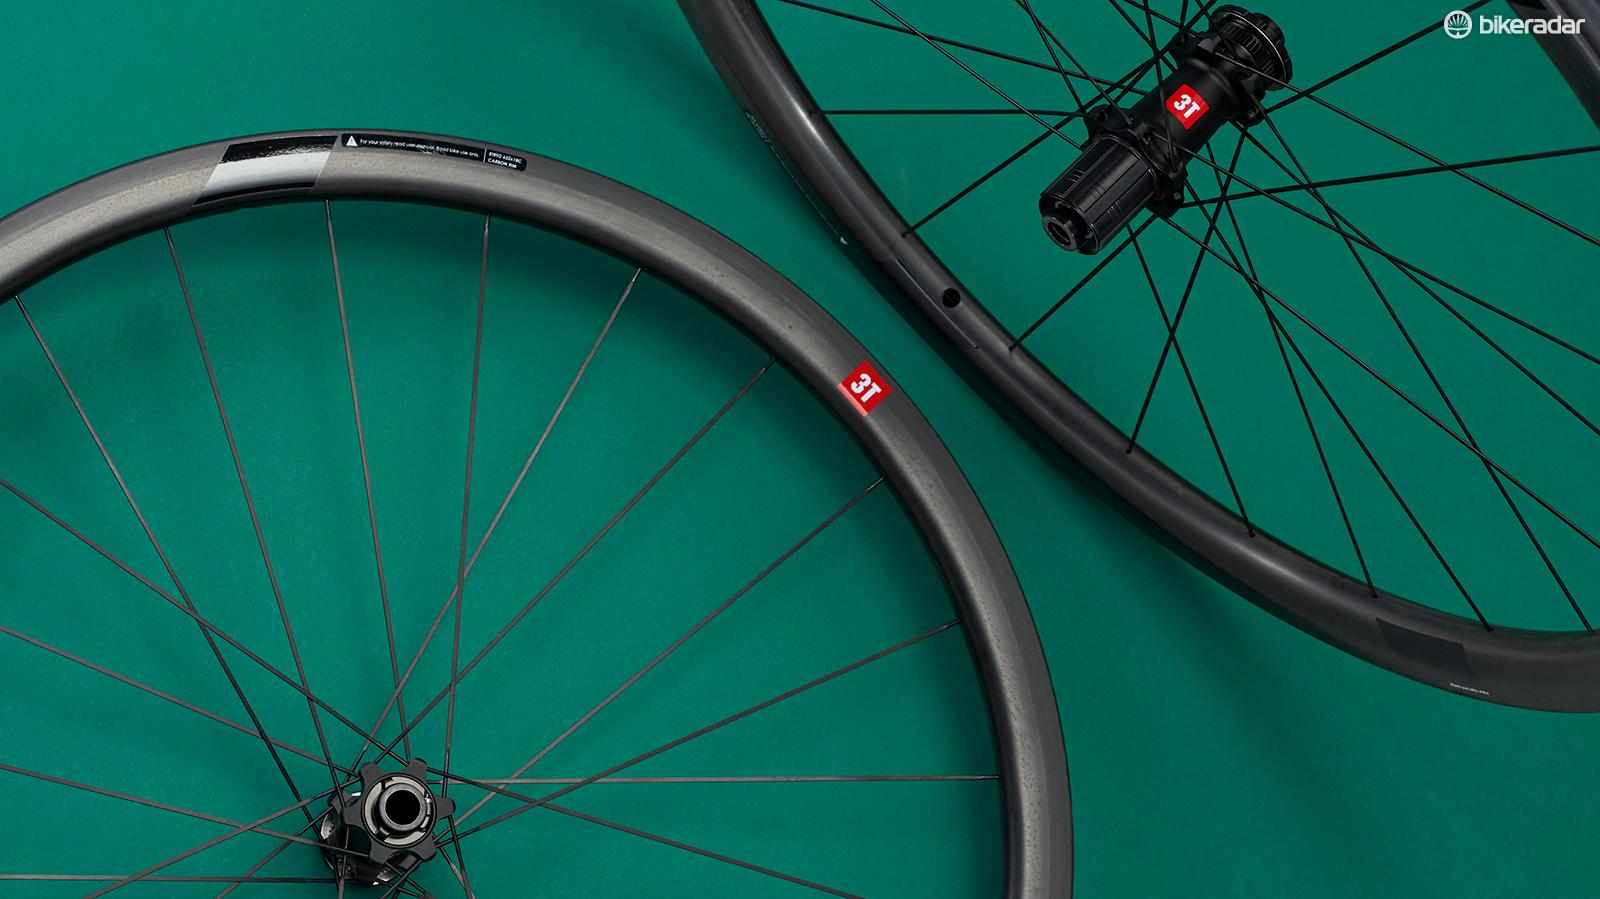 3T's Discus C35 Team Stealth wheelset is aptly named – it makes its case quietly but very effectively out on the road